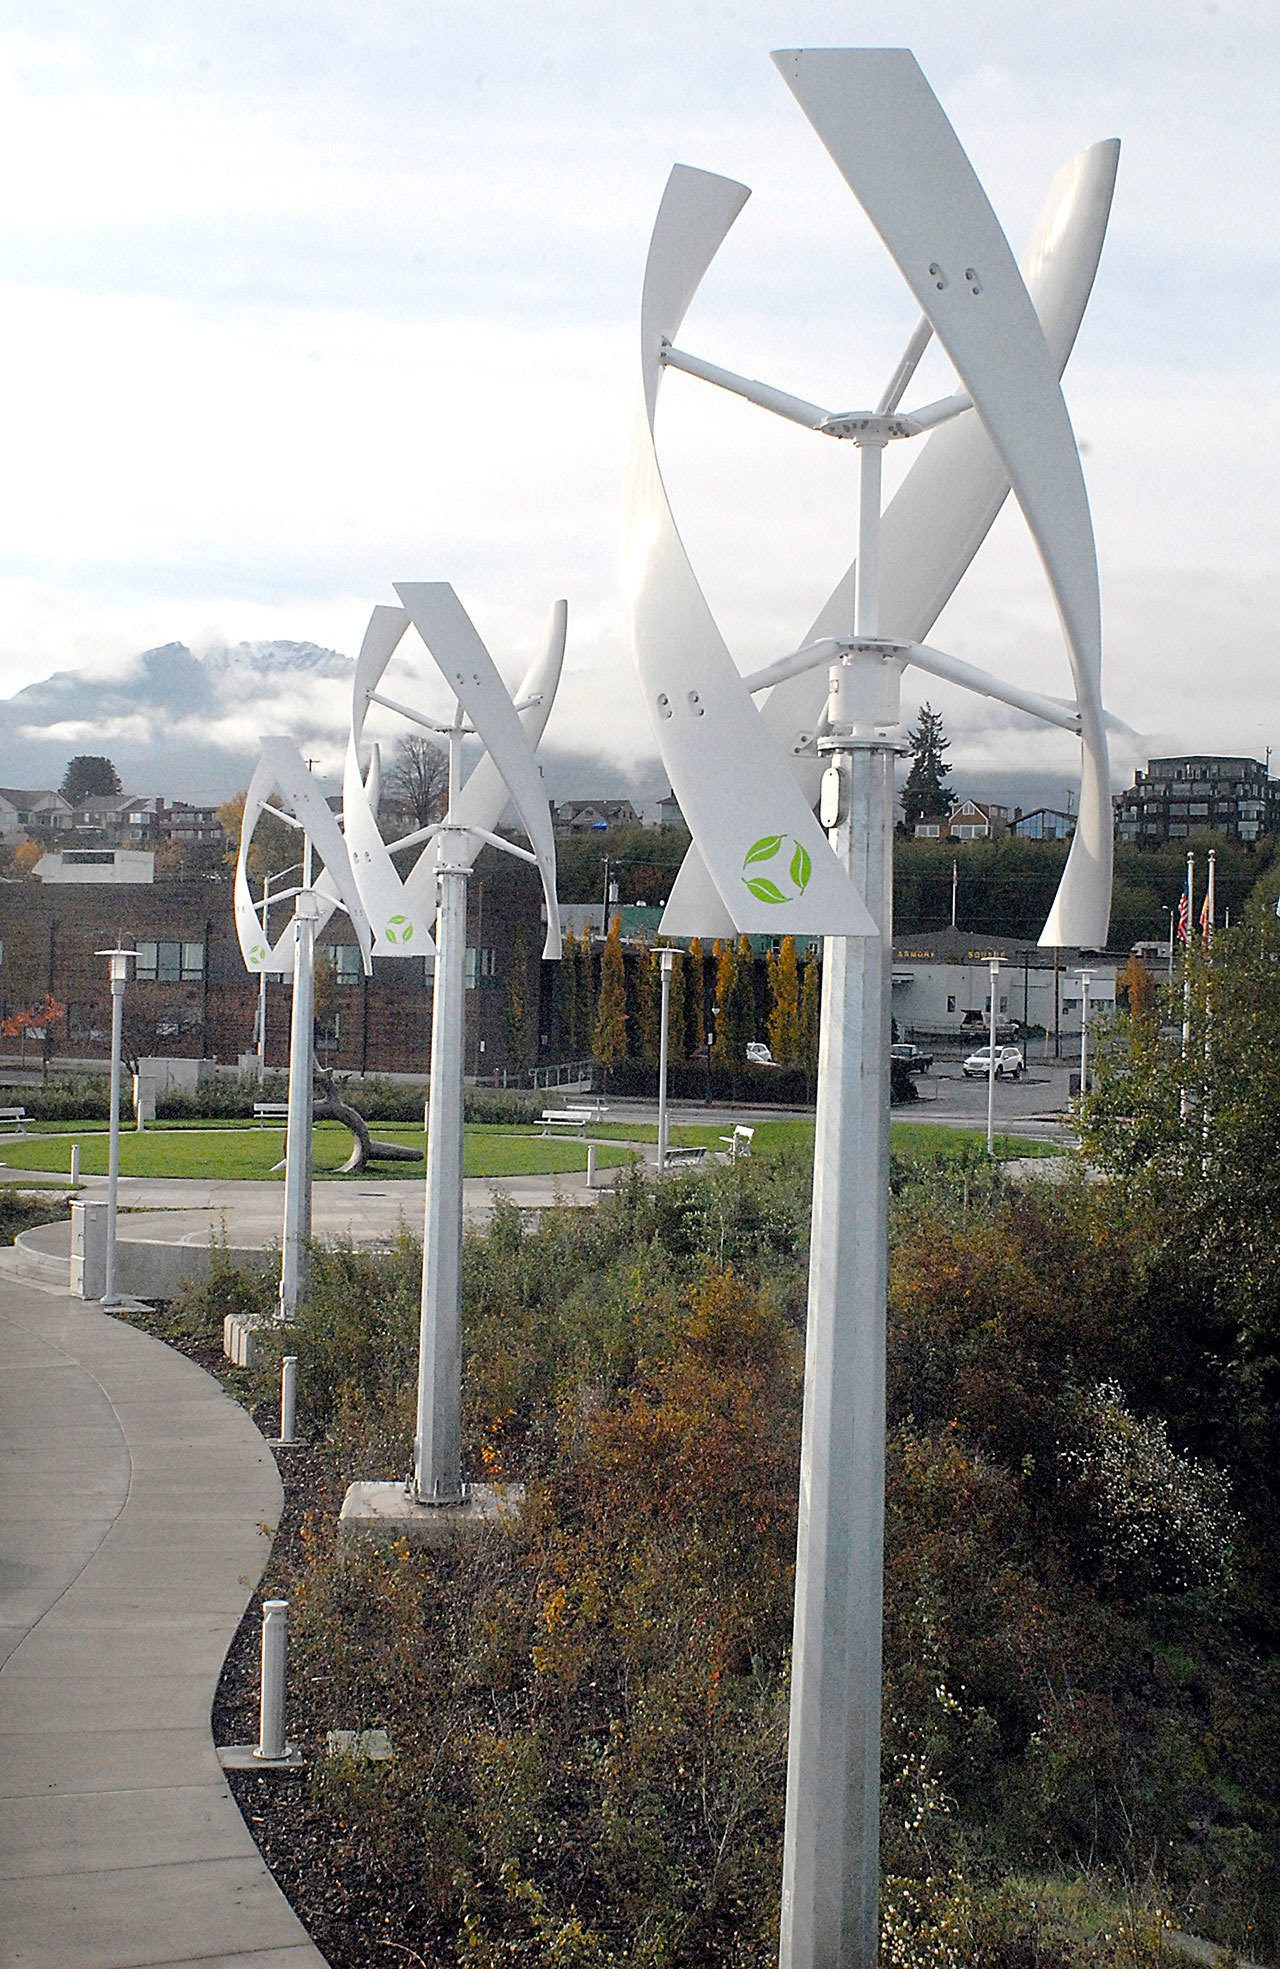 A series of wind turbines sit idle along the Valley Creek Estuary bordering the West End Park on the Port Angeles waterfront. (Keith Thorpe/Peninsula Daily News)